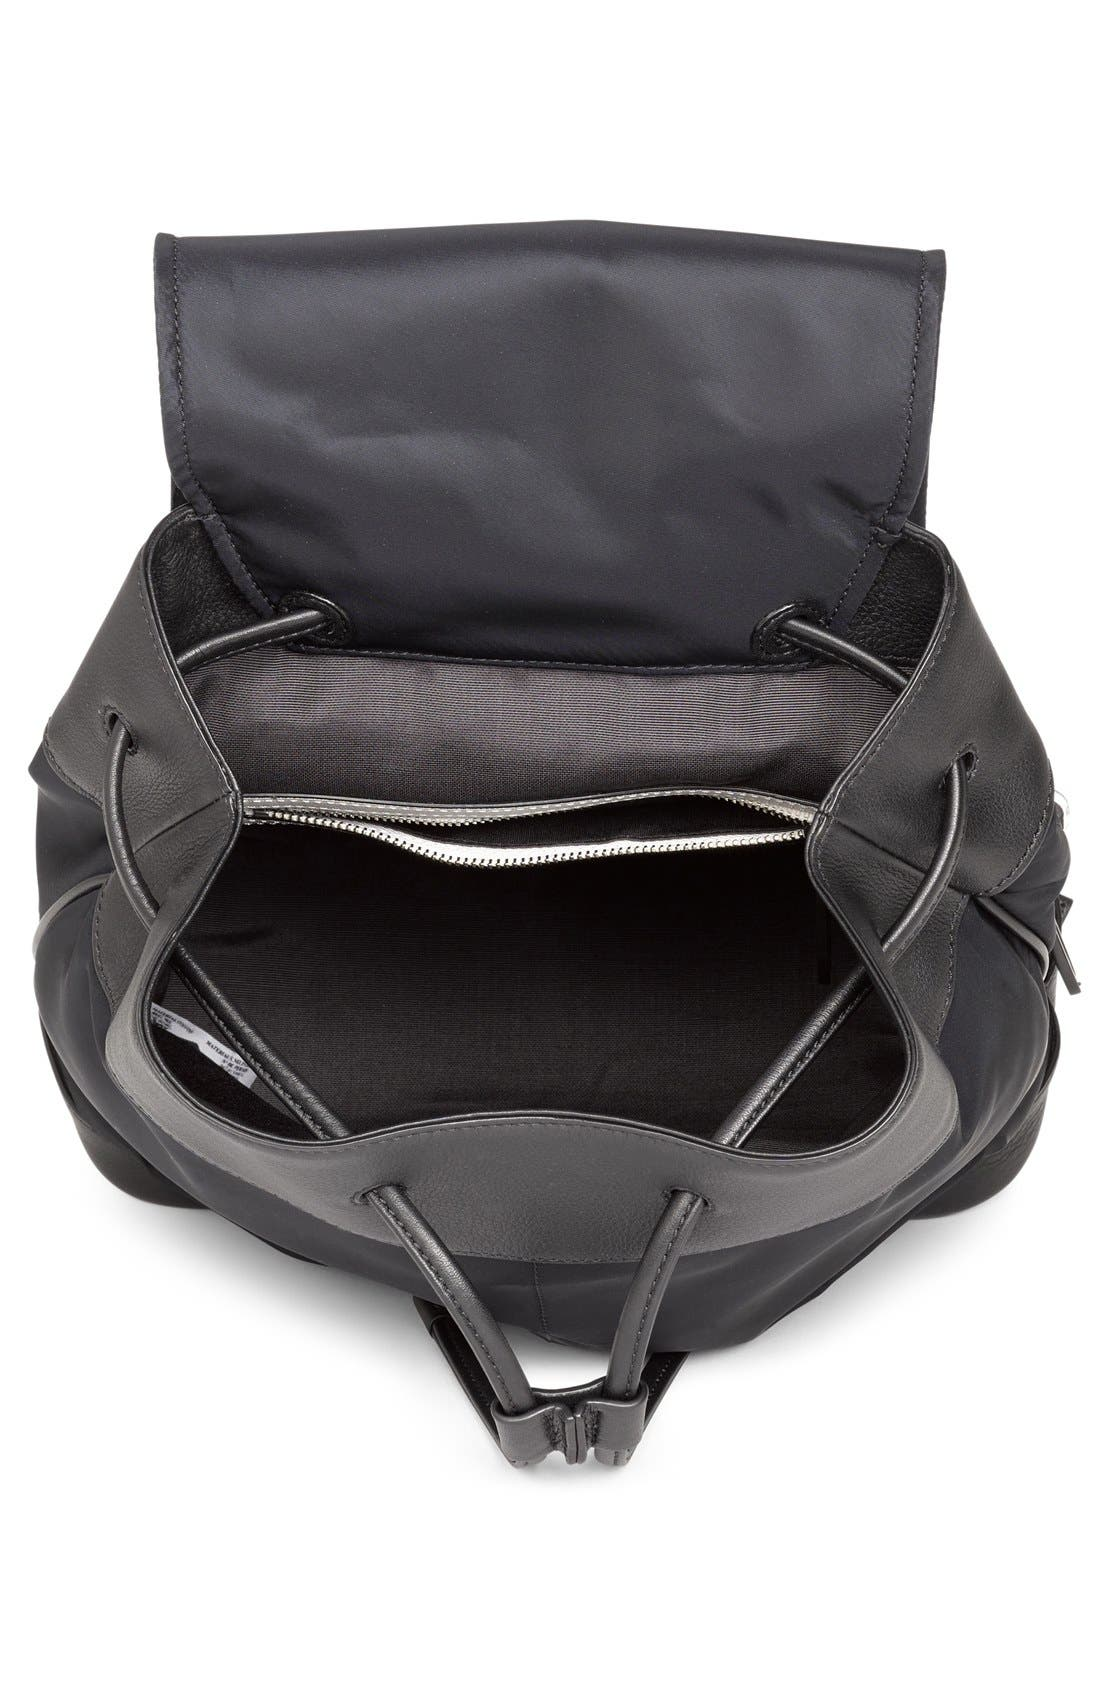 RAG & BONE,                             'Pilot' Nylon Backpack,                             Alternate thumbnail 4, color,                             002